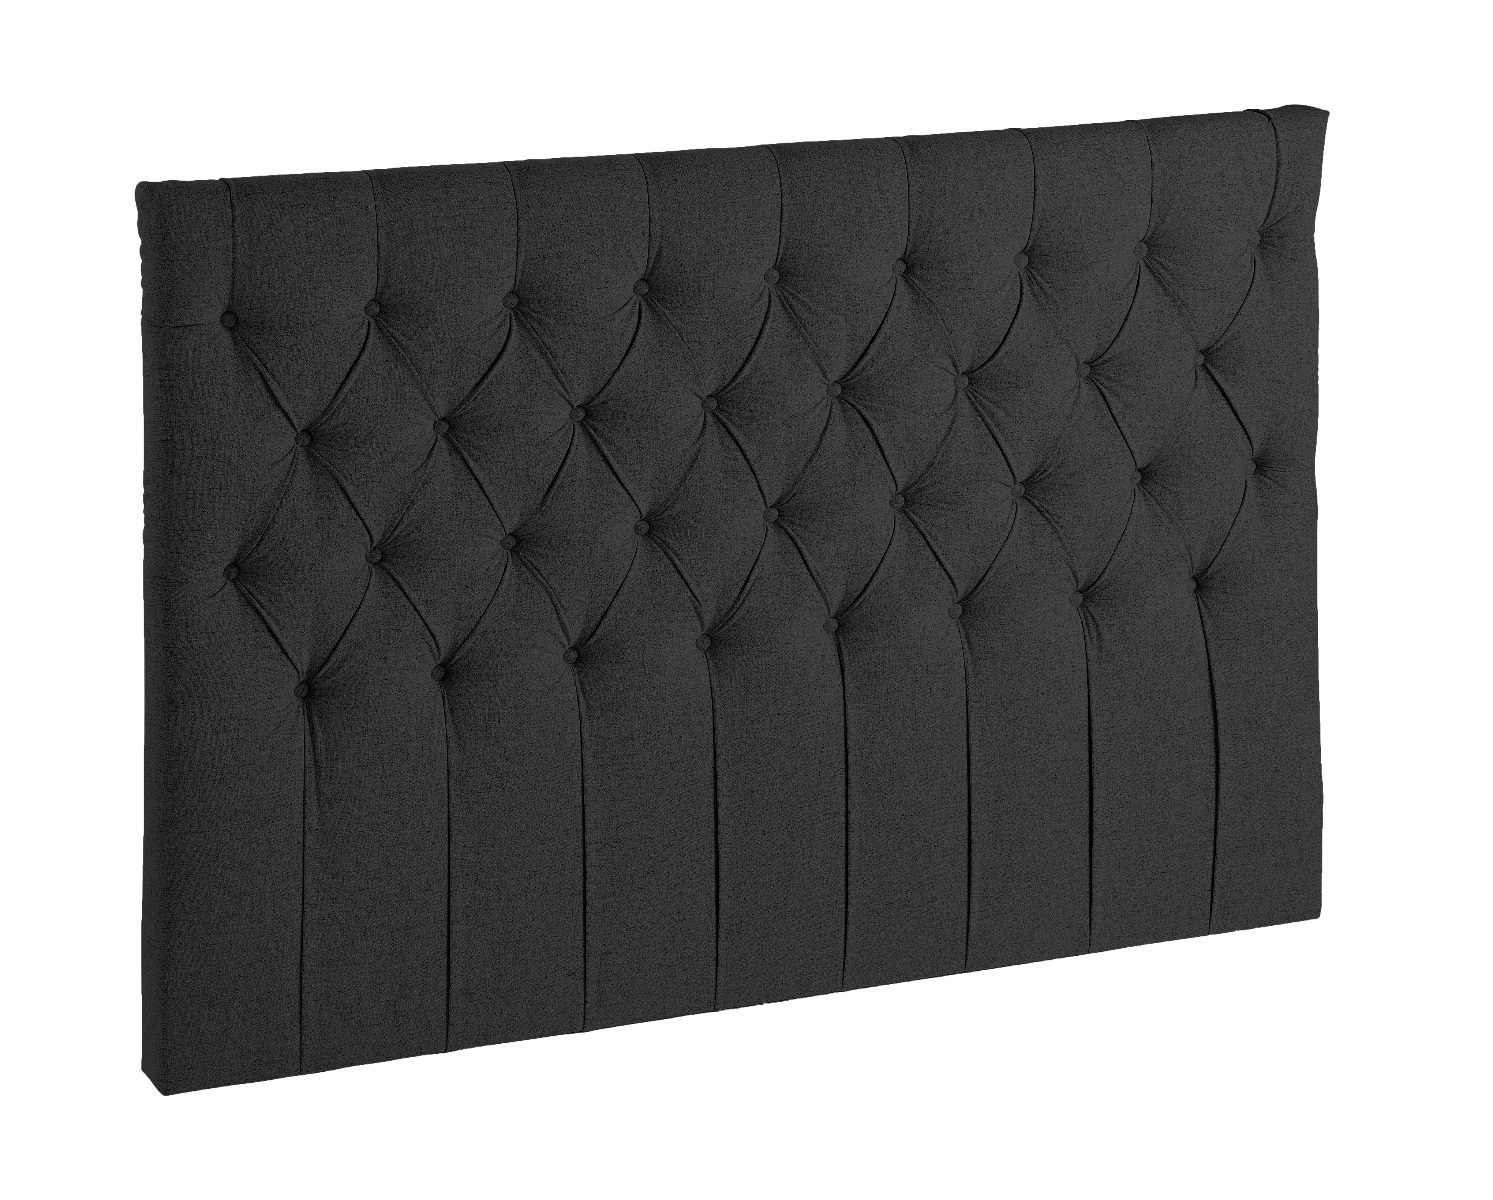 Image of Senses Lux Gavl Chesterfield - 160 x 120 (6874)